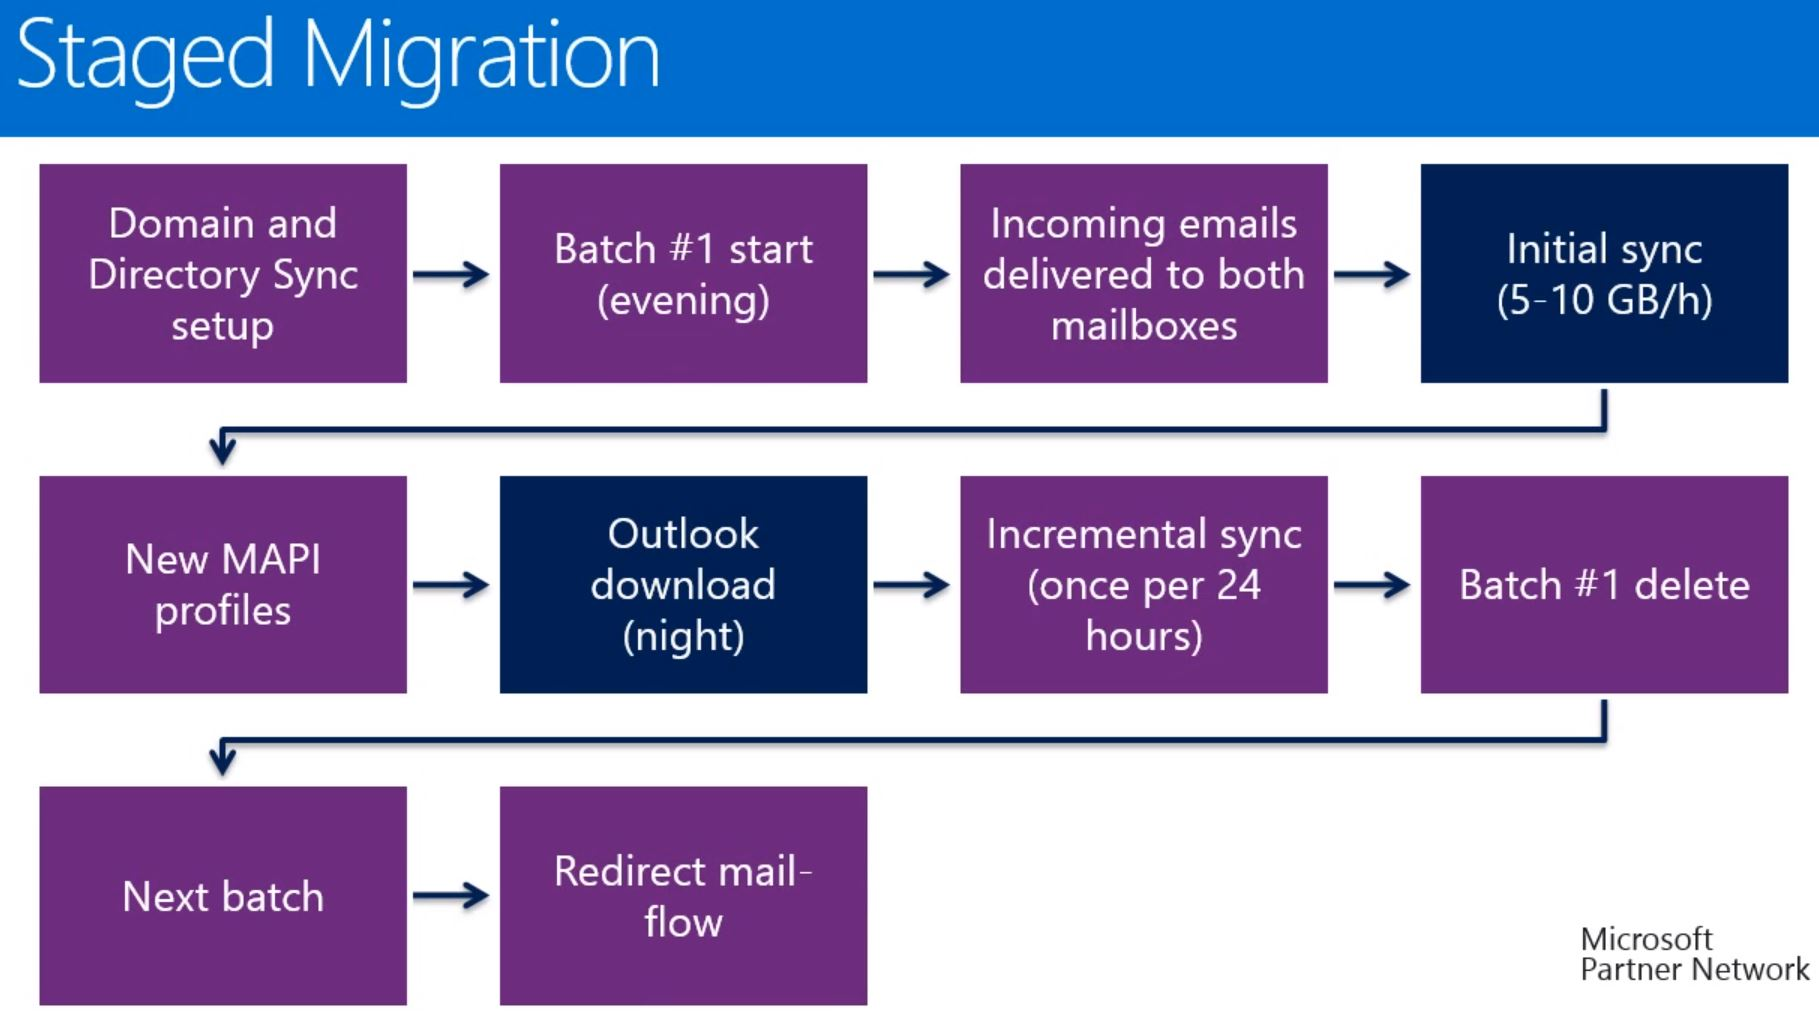 Office 365 - Staged Migration